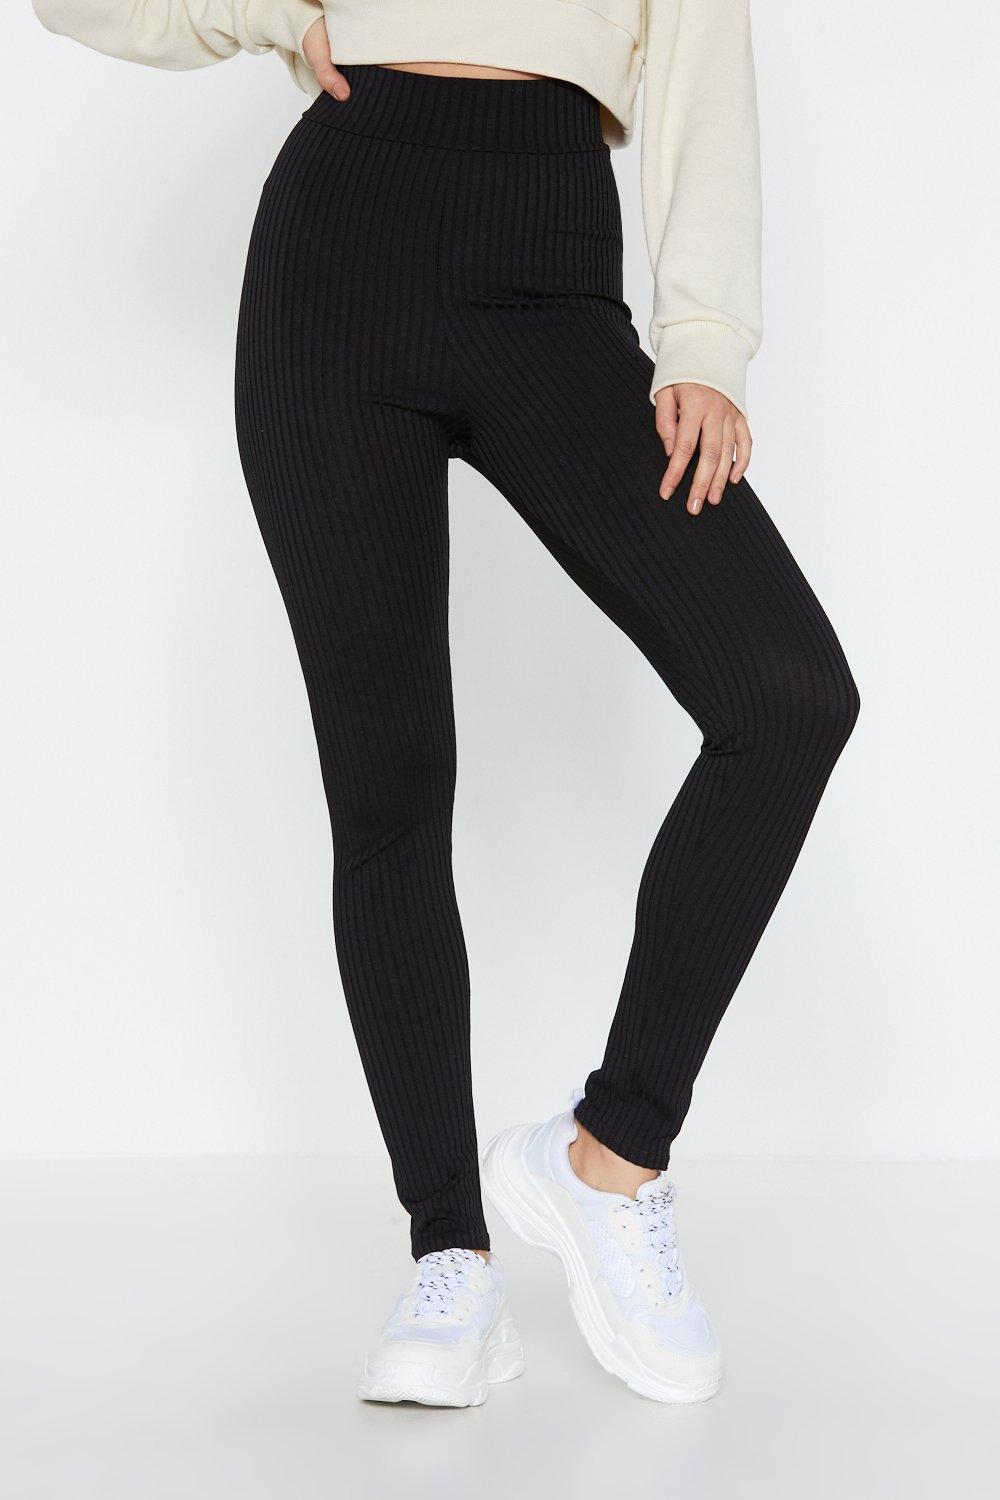 c3f92a8d9ae843 Ribbed High Waisted Leggings | Shop Clothes at Nasty Gal!